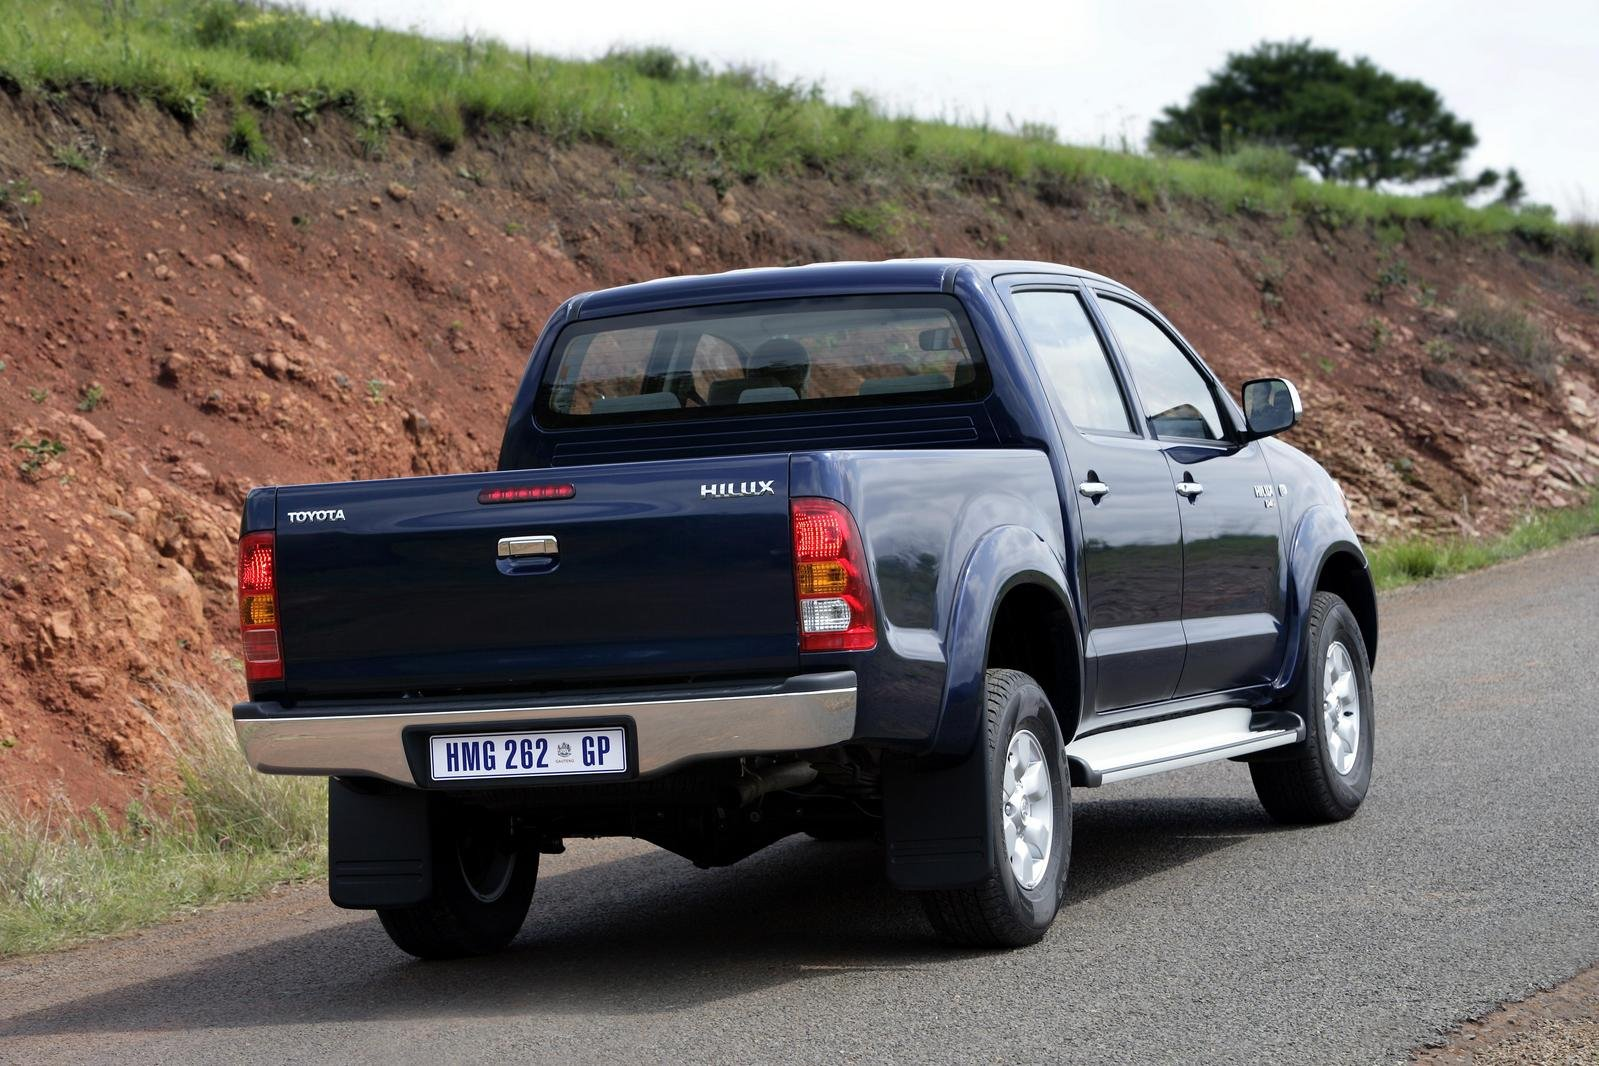 2007 toyota hilux picture 158003 car review top speed. Black Bedroom Furniture Sets. Home Design Ideas